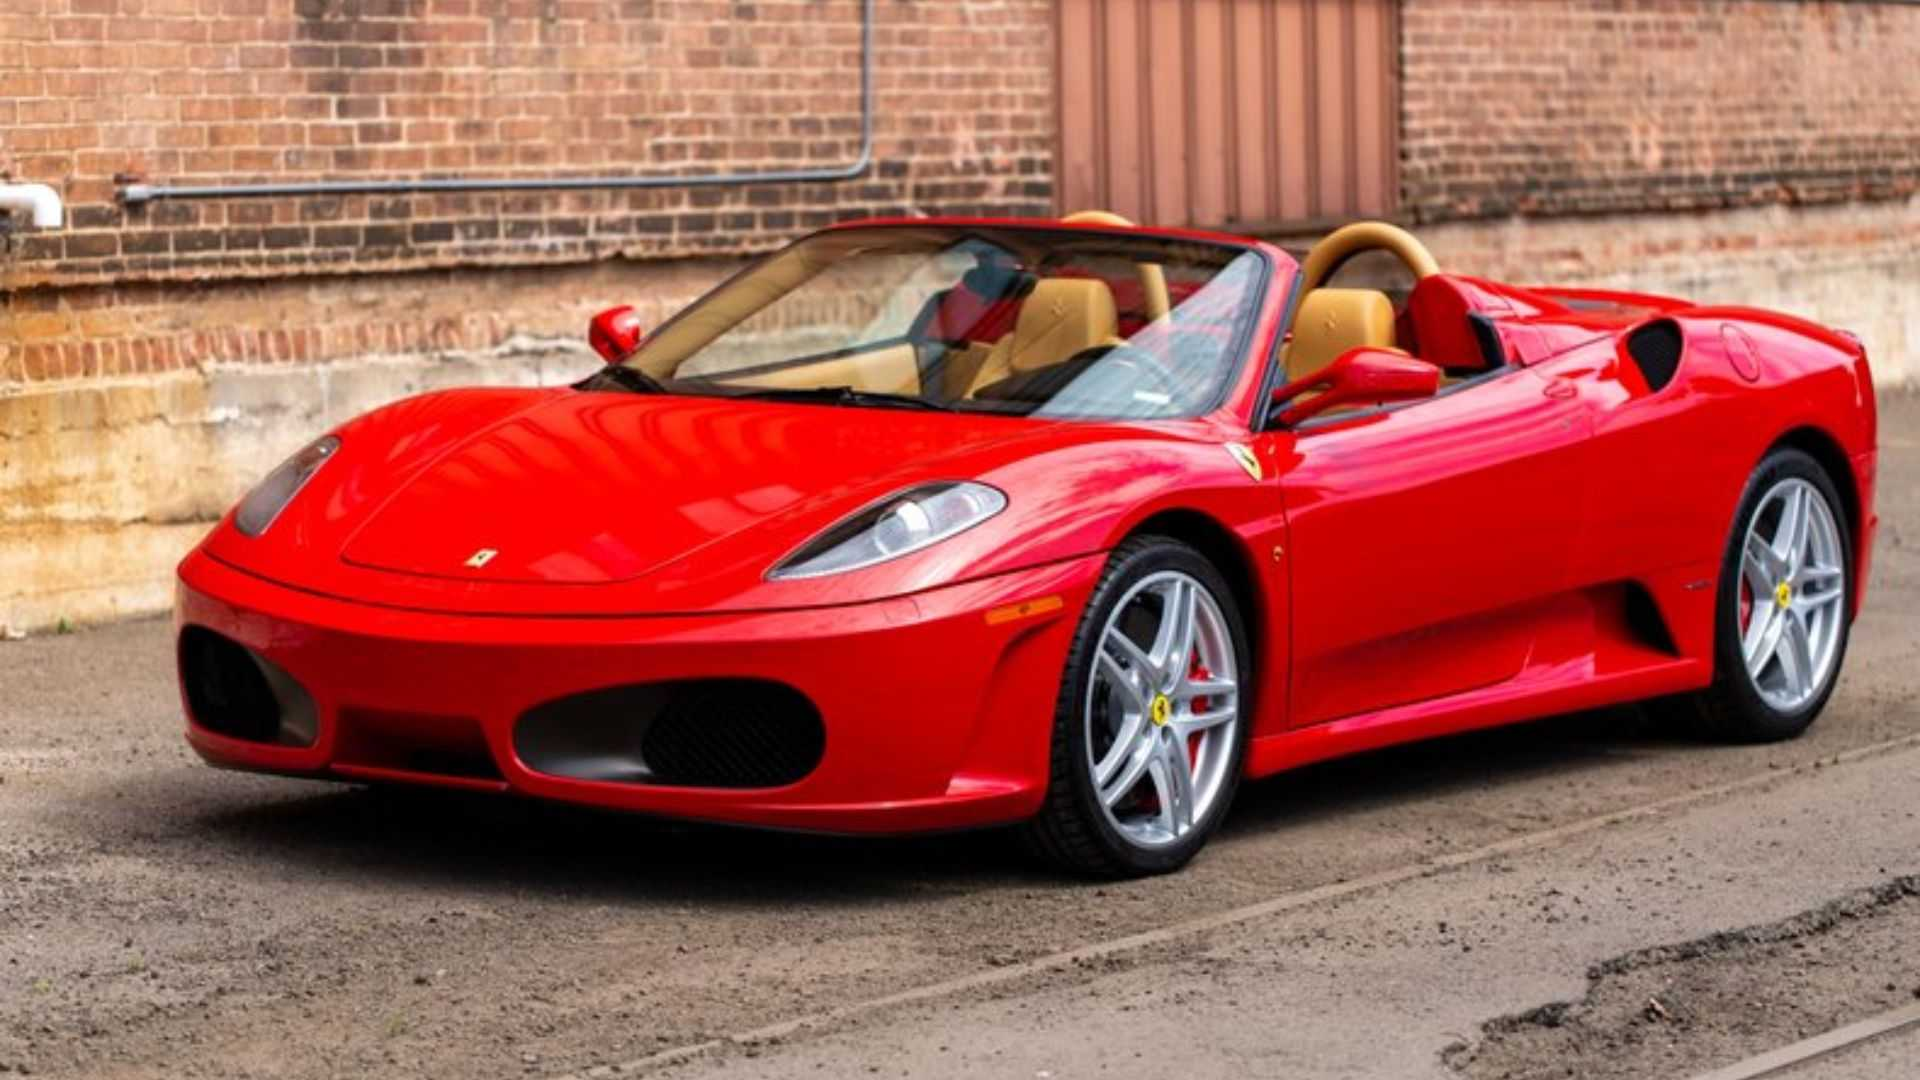 Ferrari F430 Spider Comes With A Gated Manual Motorious